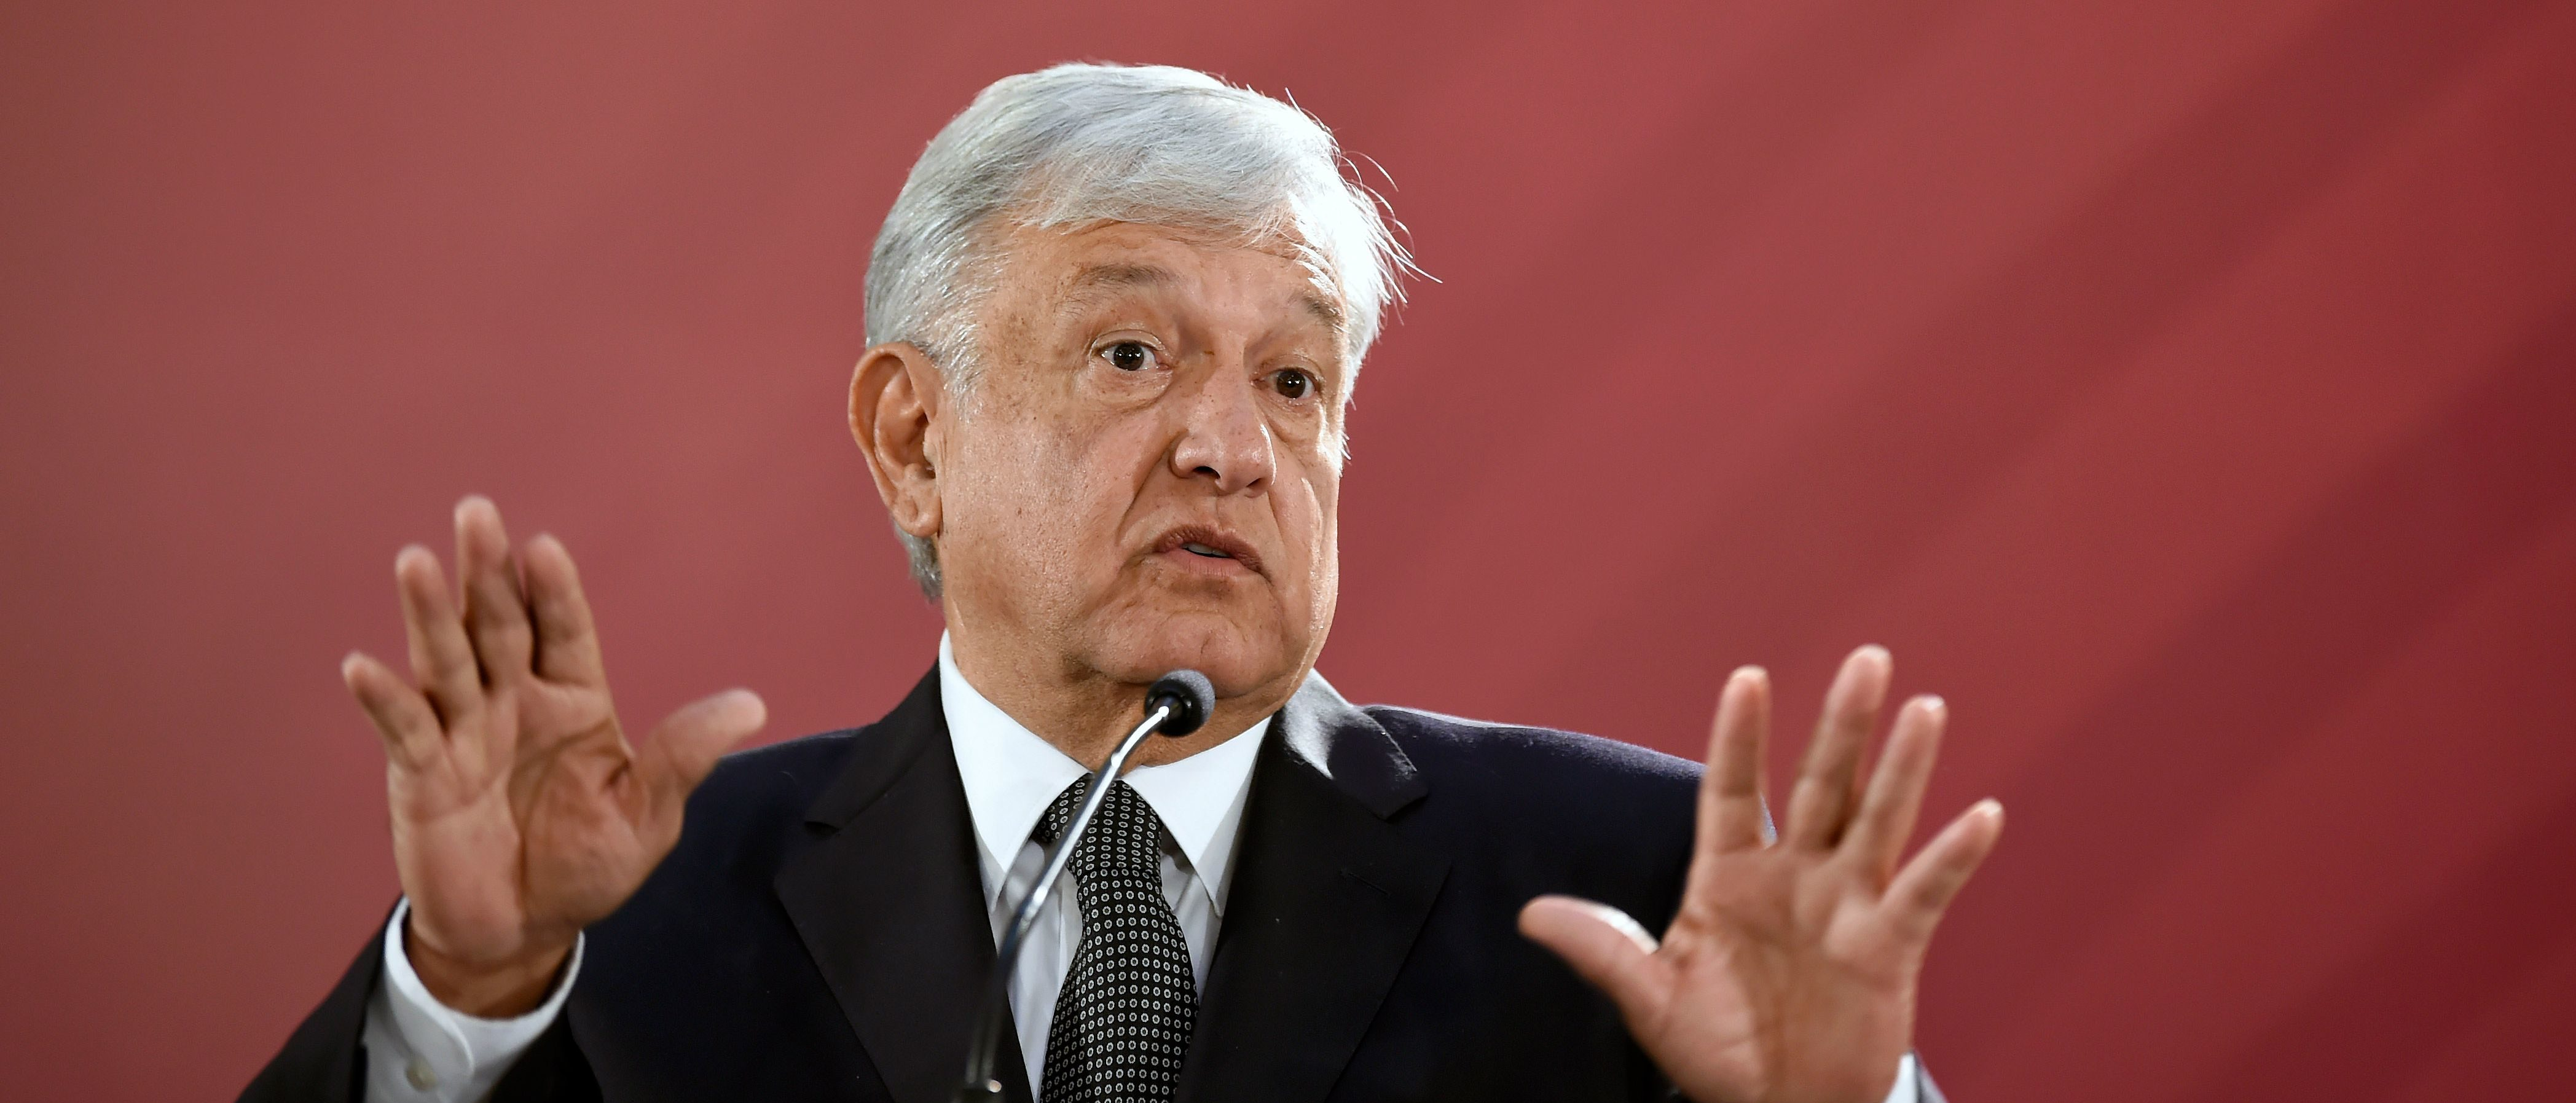 "Mexico's President Andres Manuel Lopez Obrador gives his first press conference as president, at the National Palace in Mexico City on December 3, 2018. - Anti-establishment leftist Andres Manuel Lopez Obrador vowed a ""deep and radical"" change in Mexico as he assumed the country's presidency on December 1. (Photo by Alfredo ESTRELLA / AFP) (Photo credit should read ALFREDO ESTRELLA/AFP/Getty Images)"